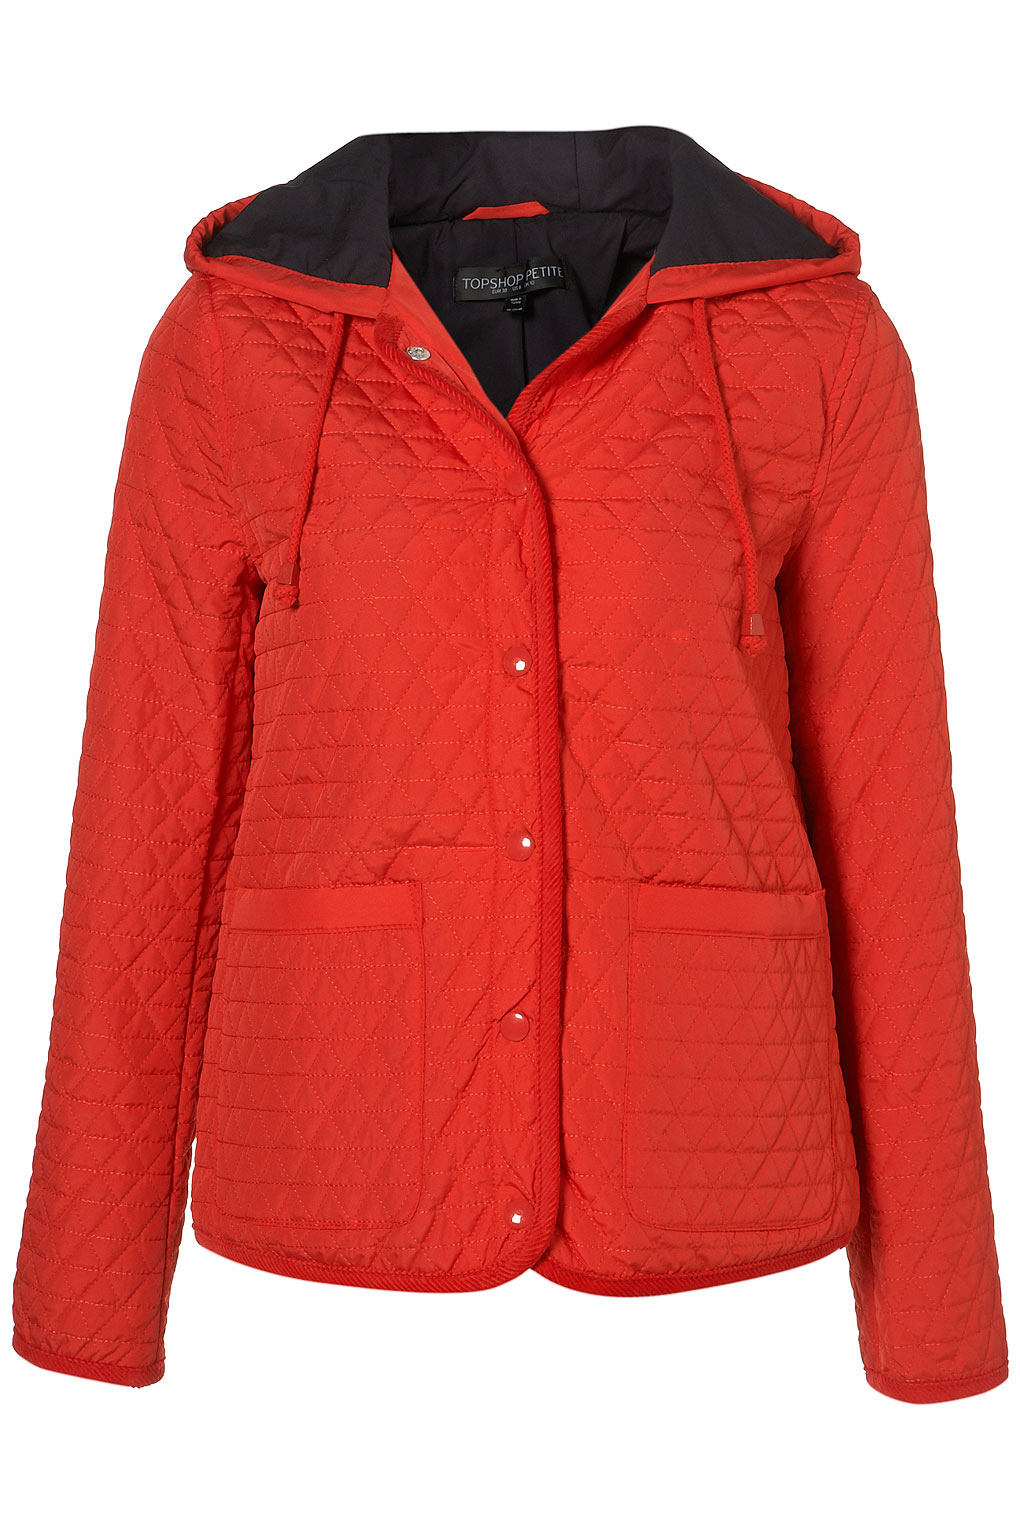 Topshop Petite Hooded Quilted Jacket In Red Lyst